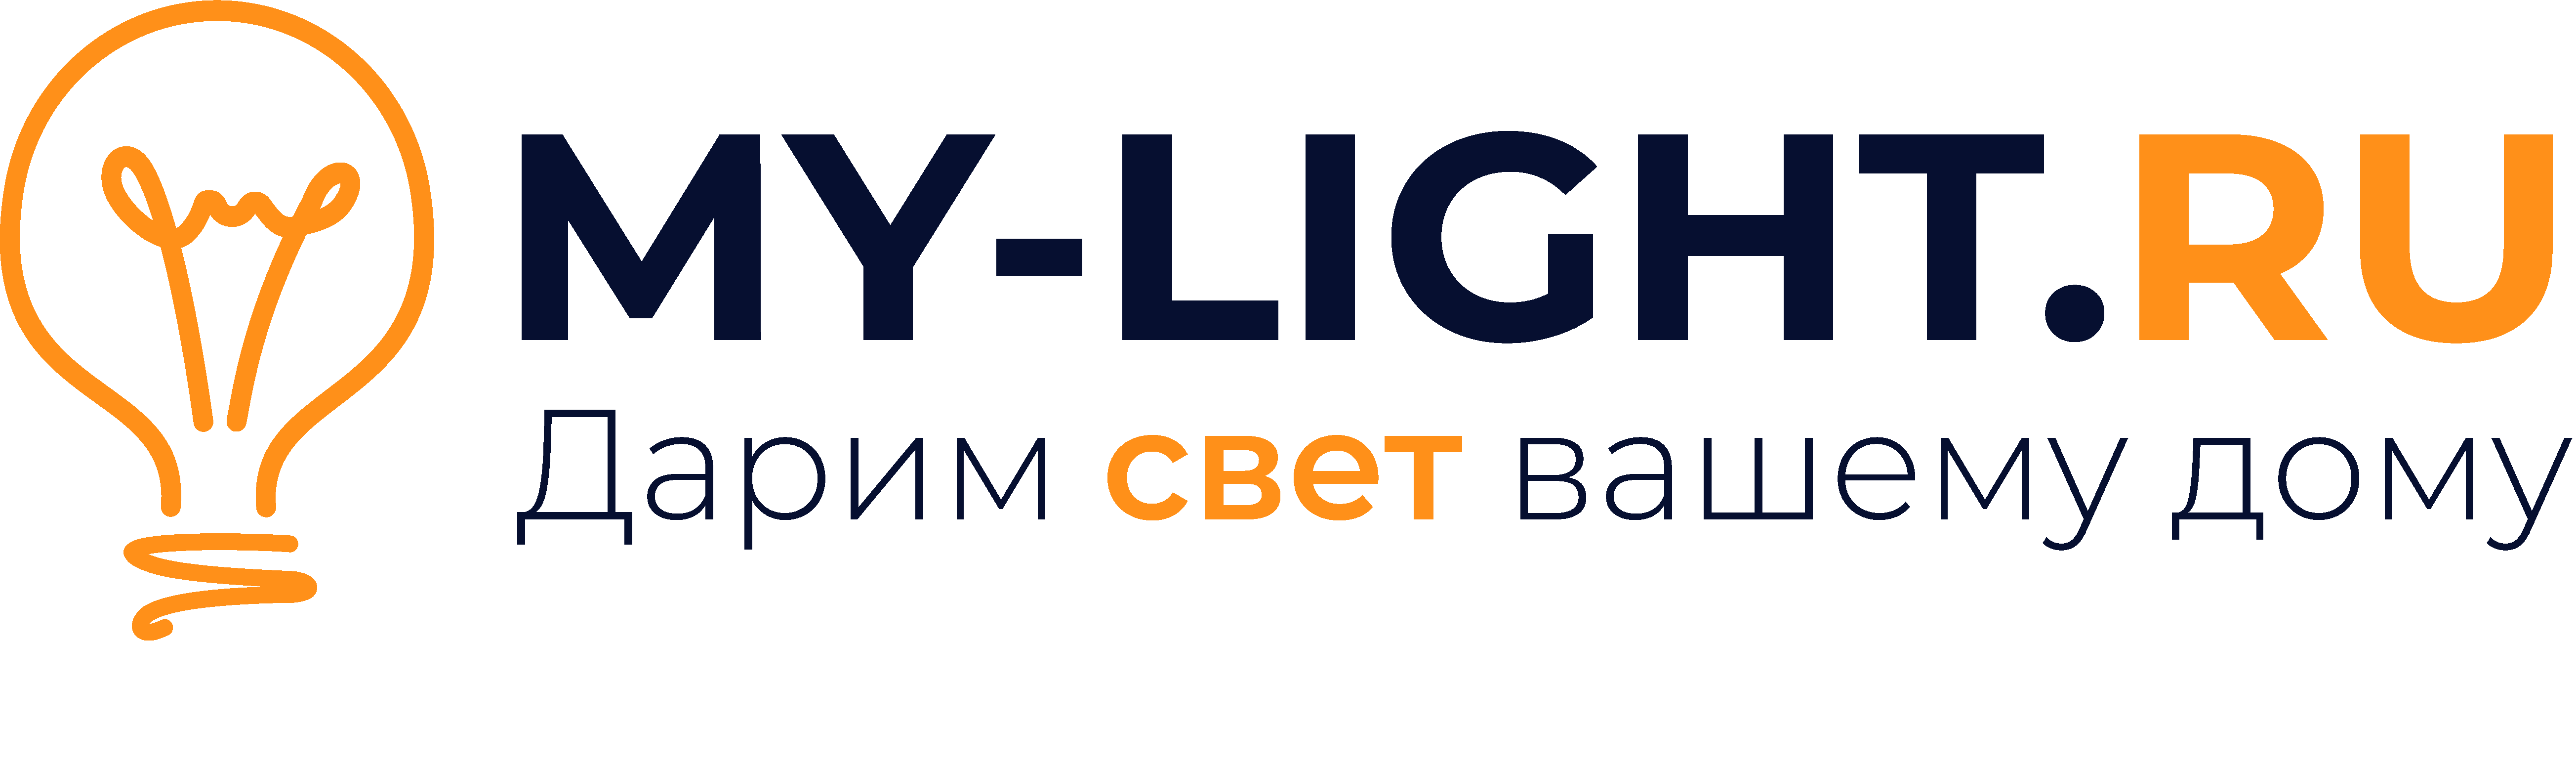 My-light.ru - дарим свет вашему дому